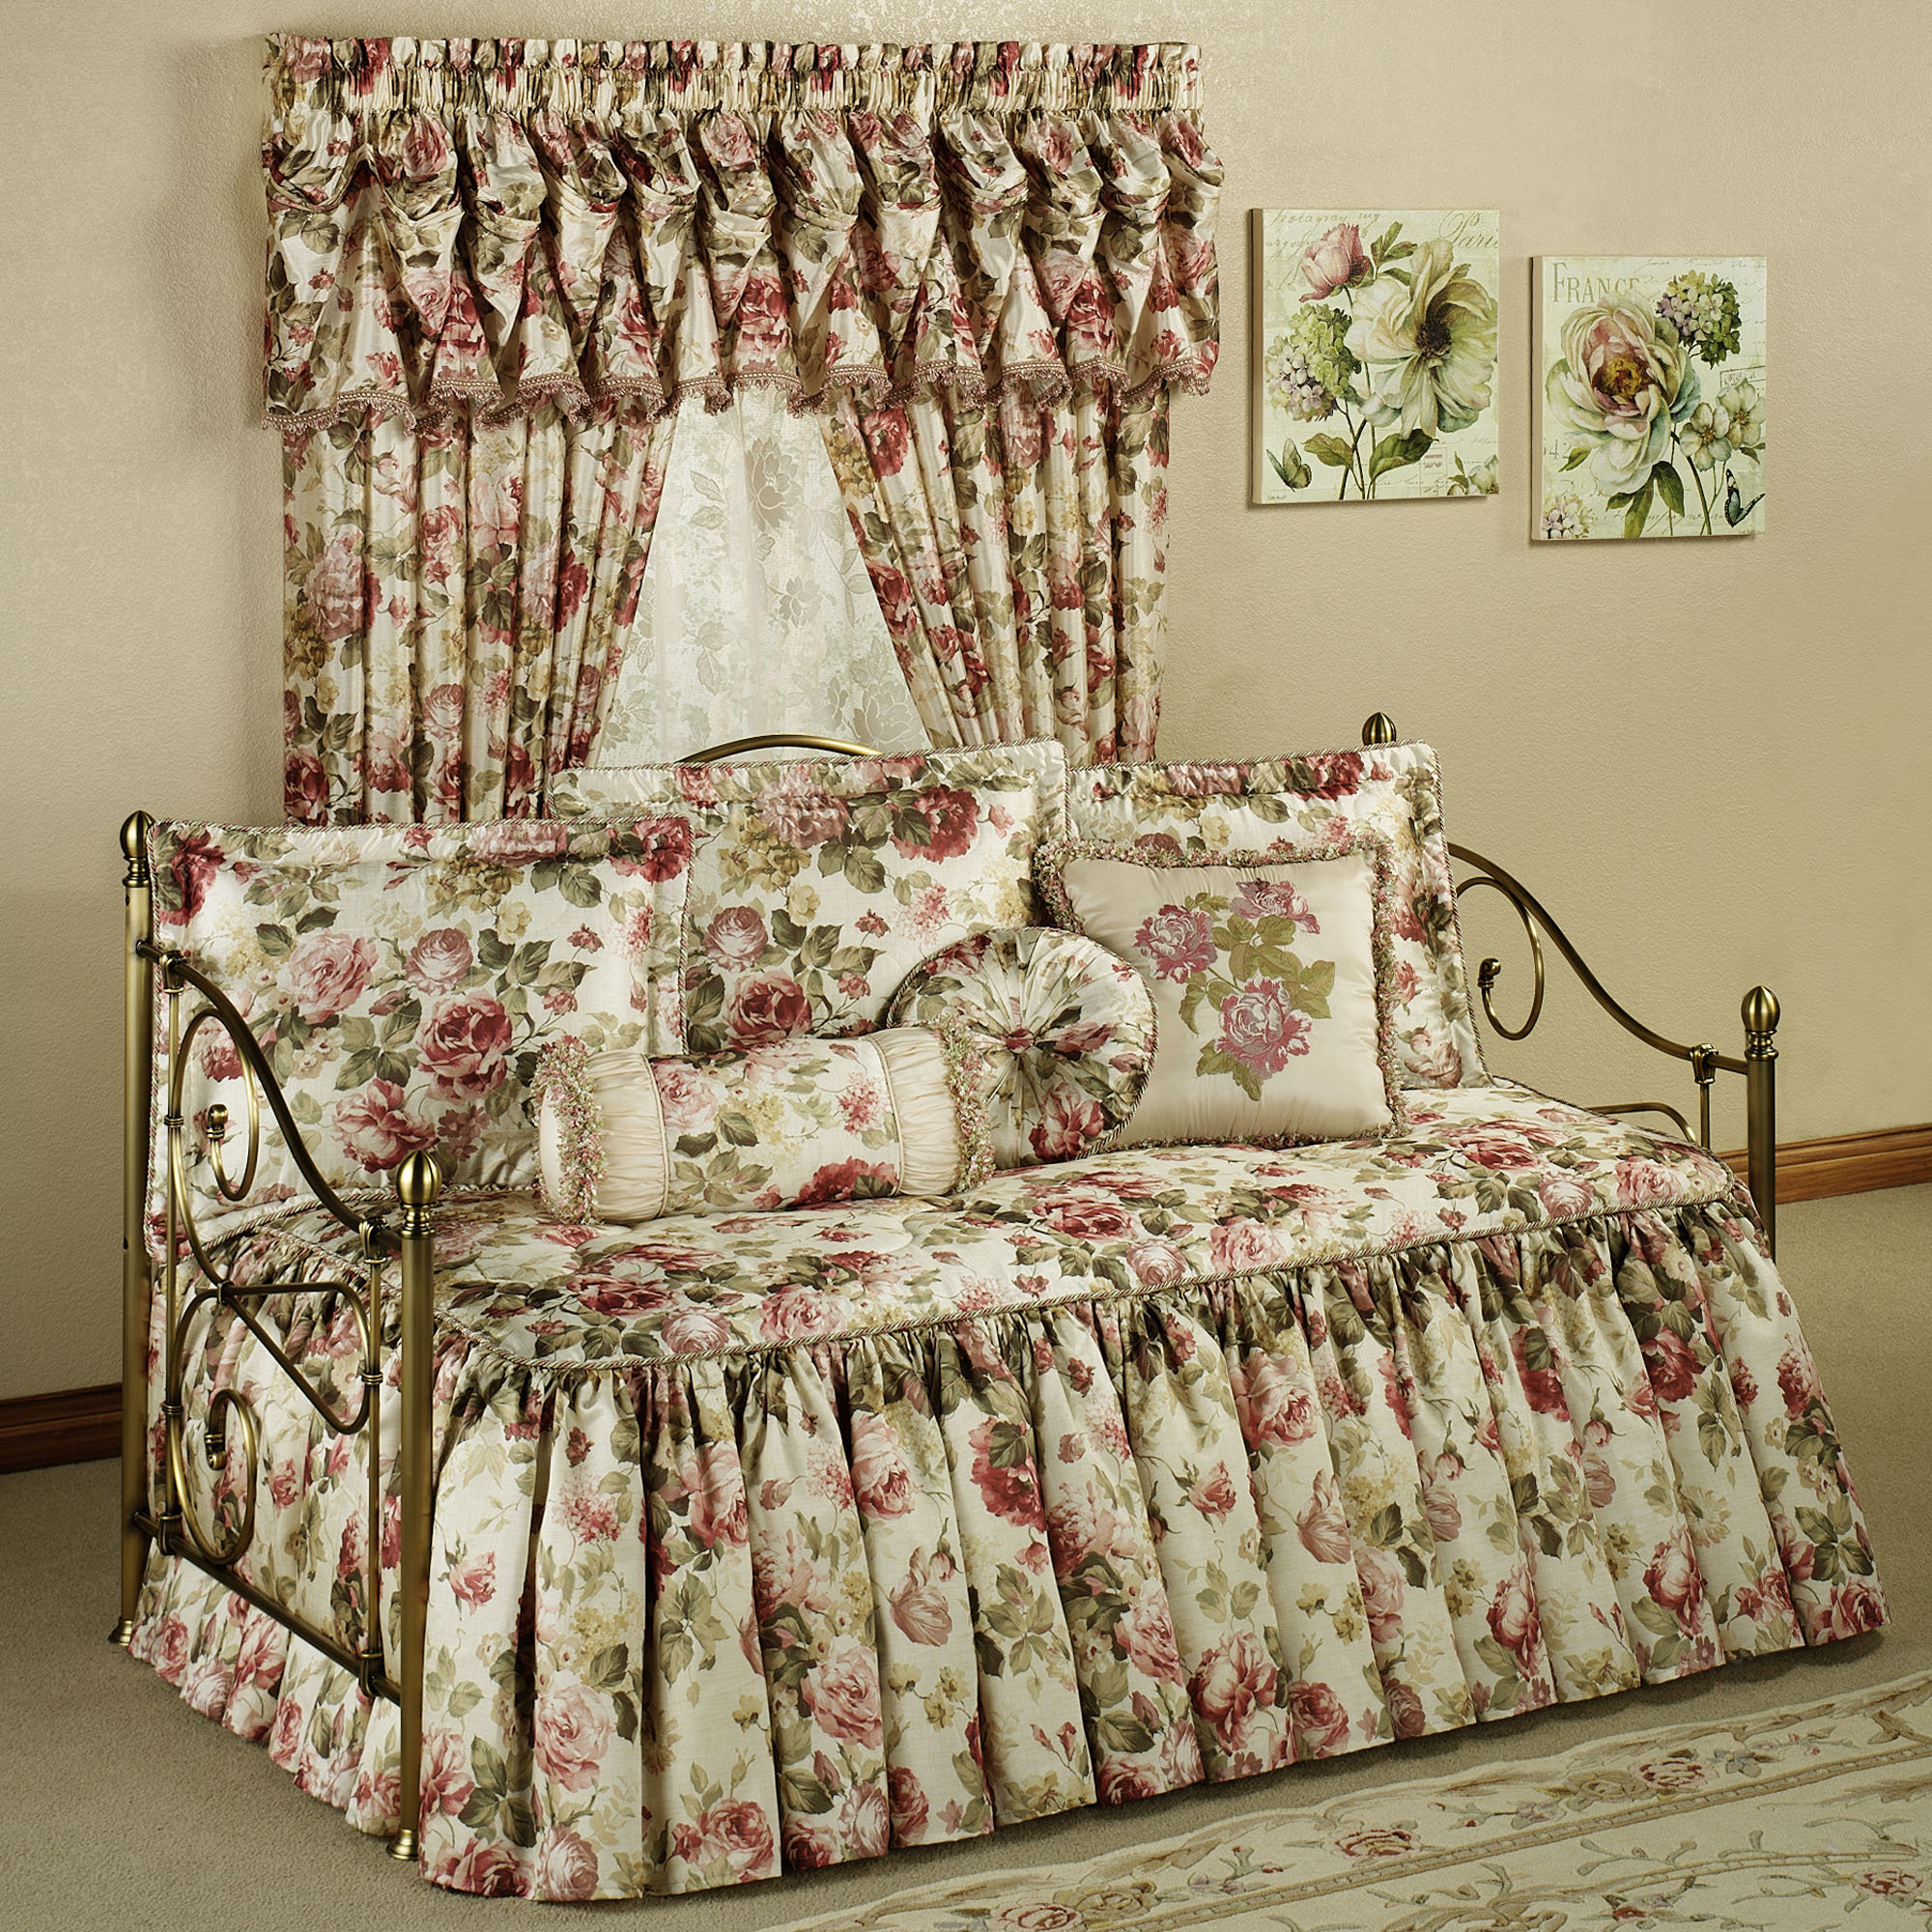 custom daybed bedding sets photo - 5